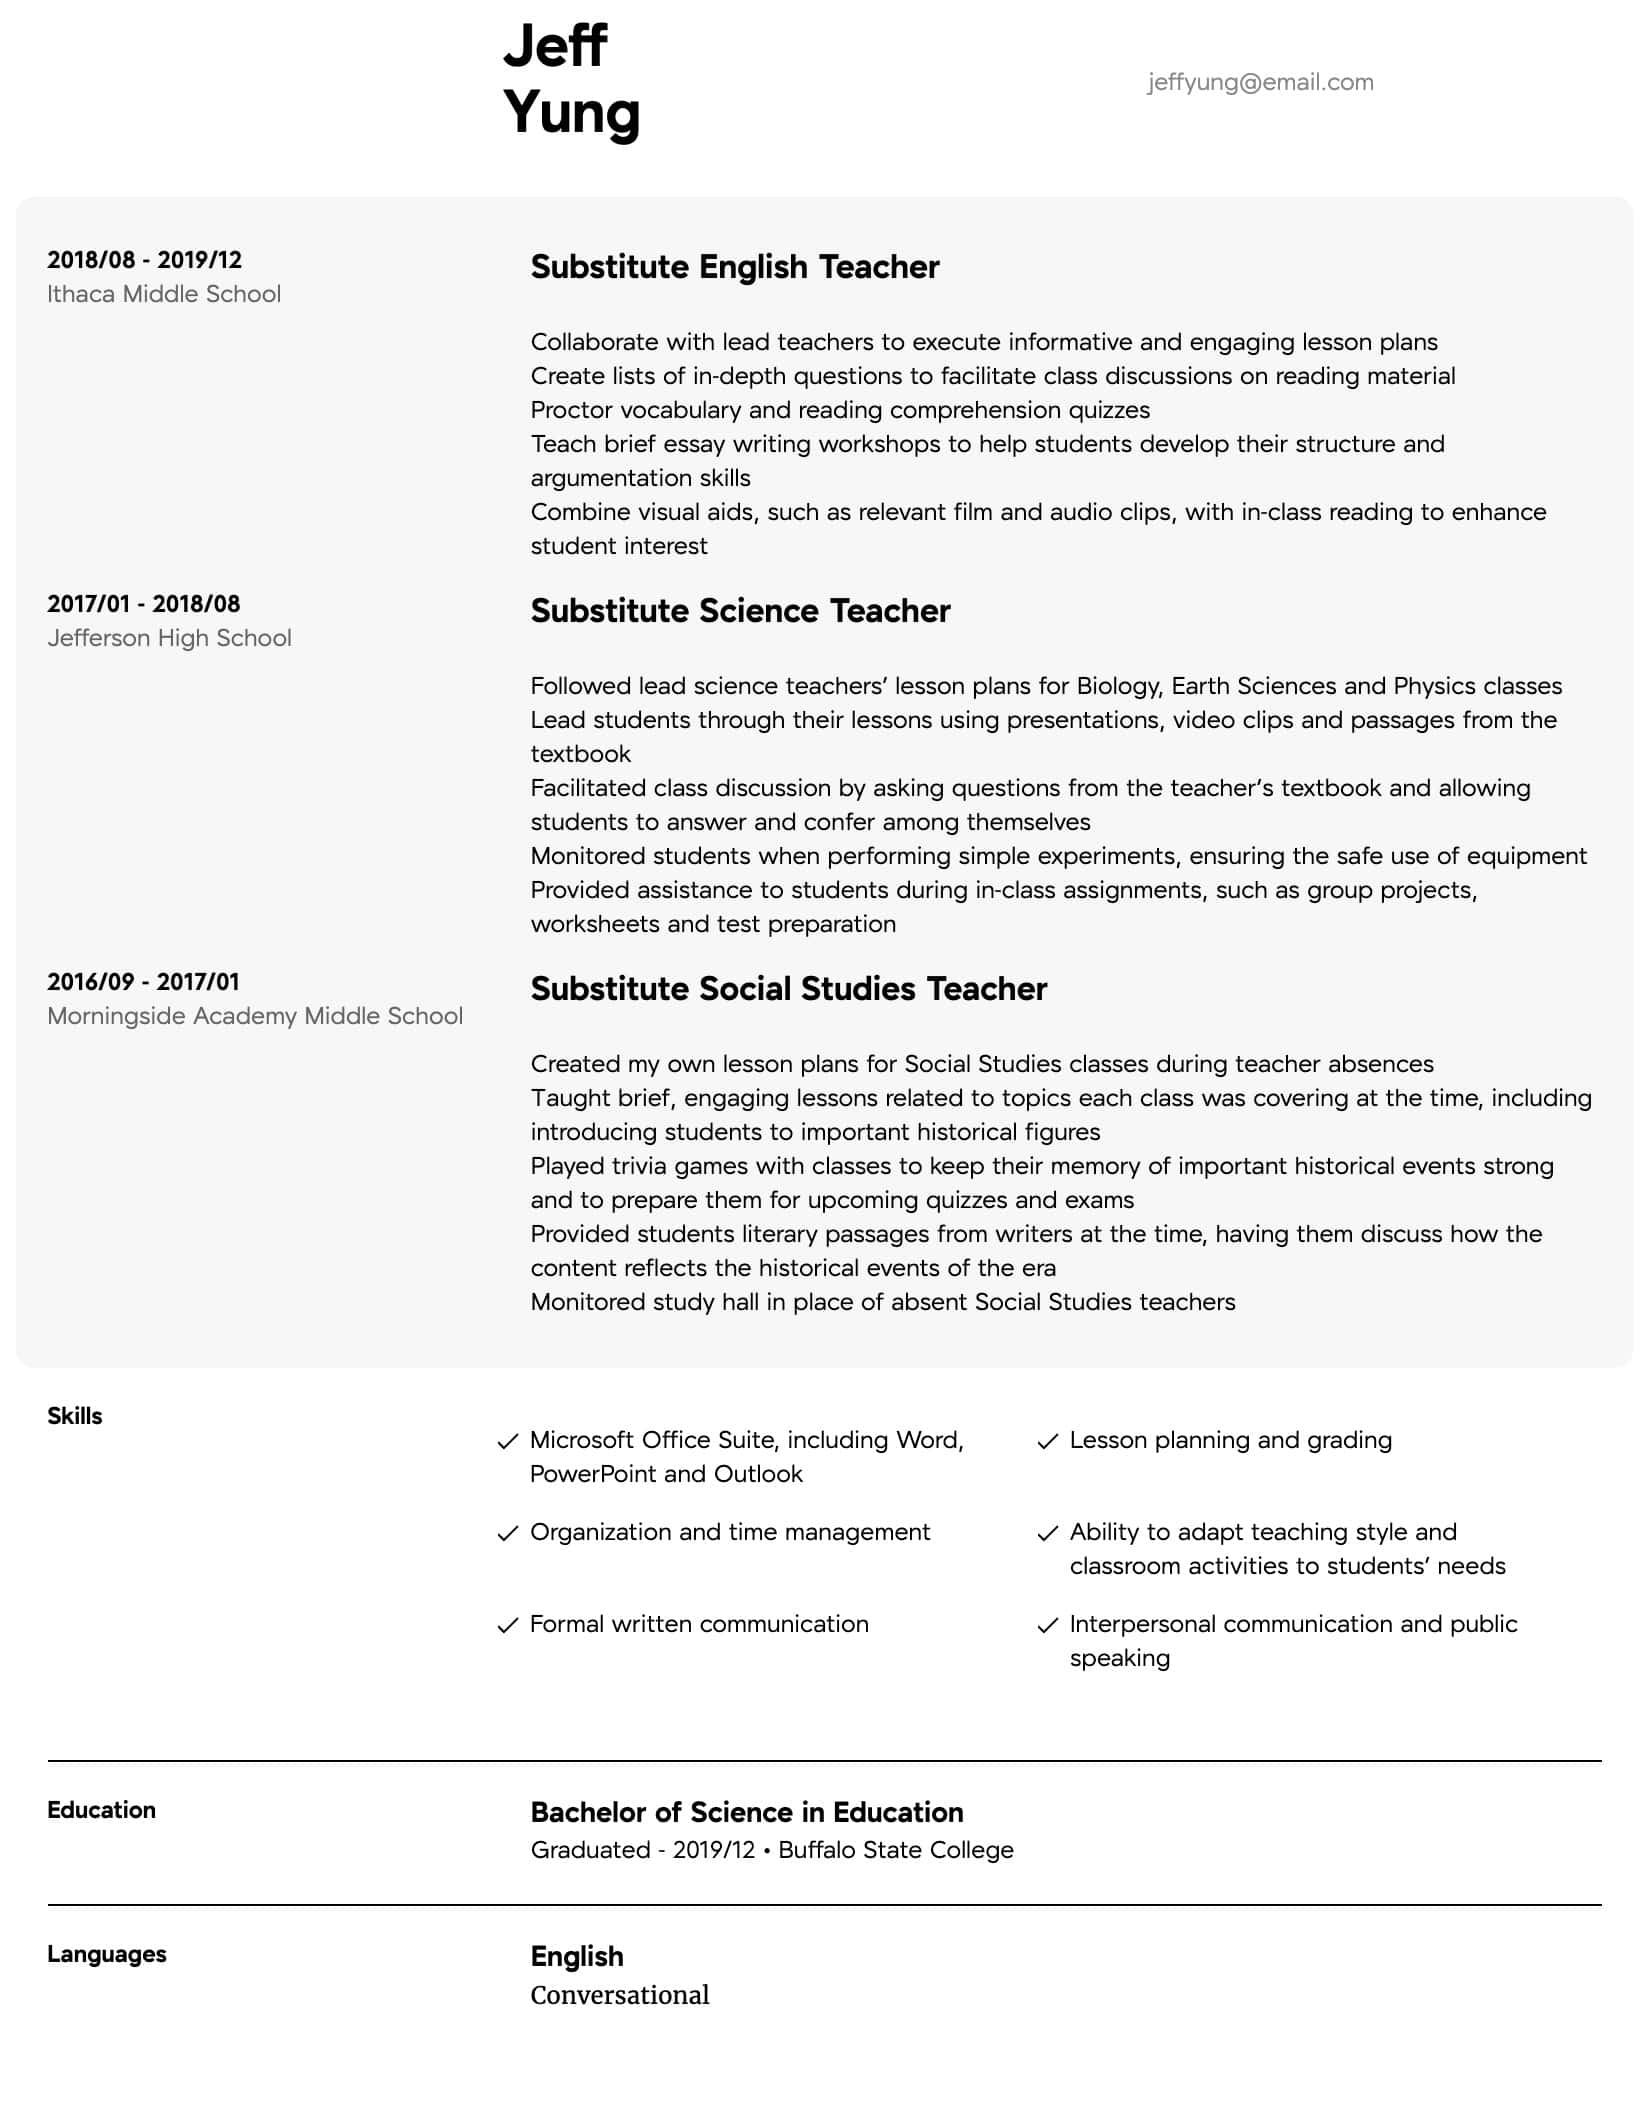 substitute teacher resume samples all experience levels skills for science intermediate Resume Skills For Science Teacher Resume